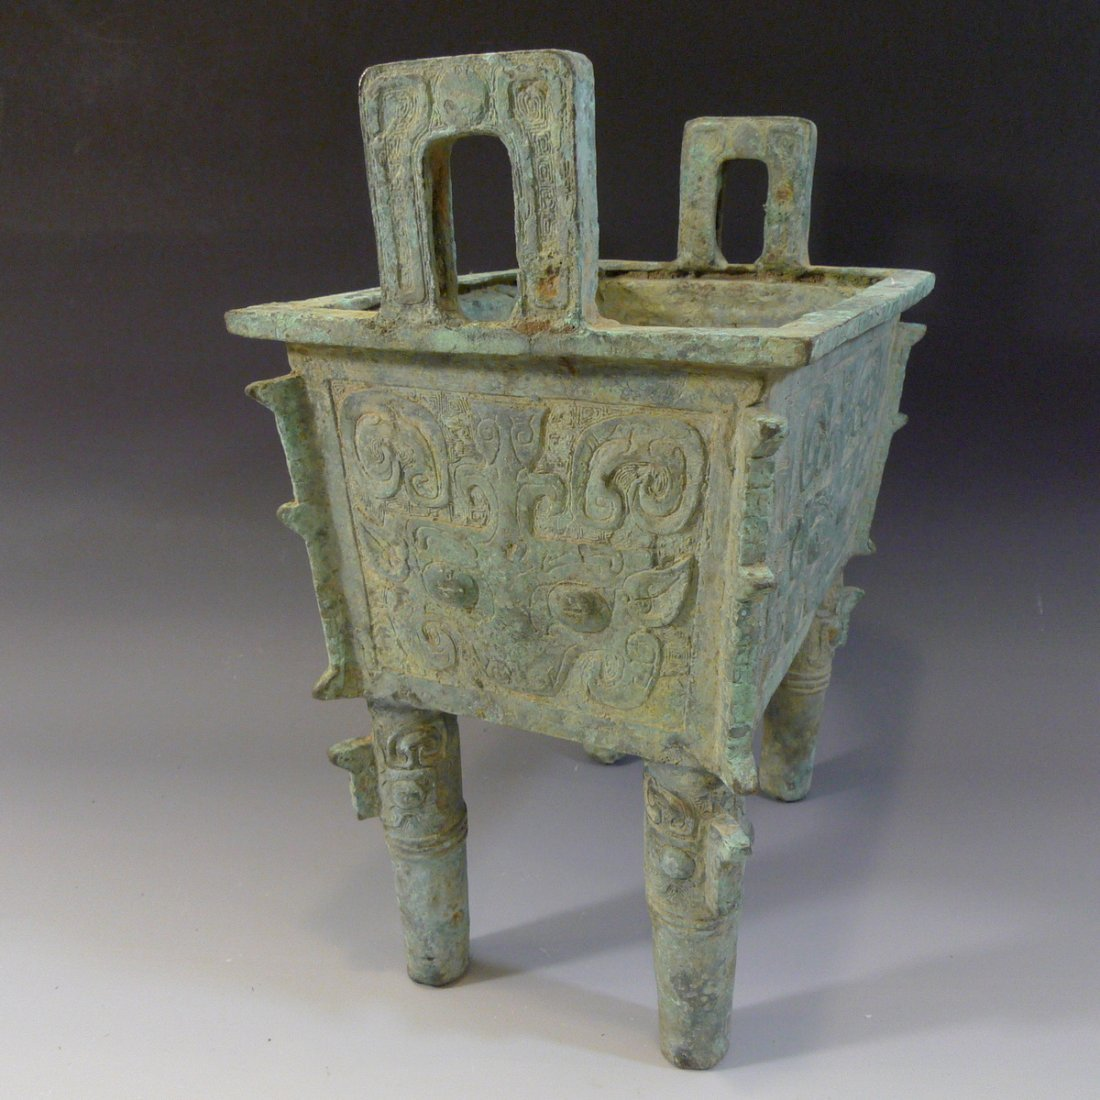 CHINESE ARCHAISTIC BRONZE DING SHANG STYLE - 9